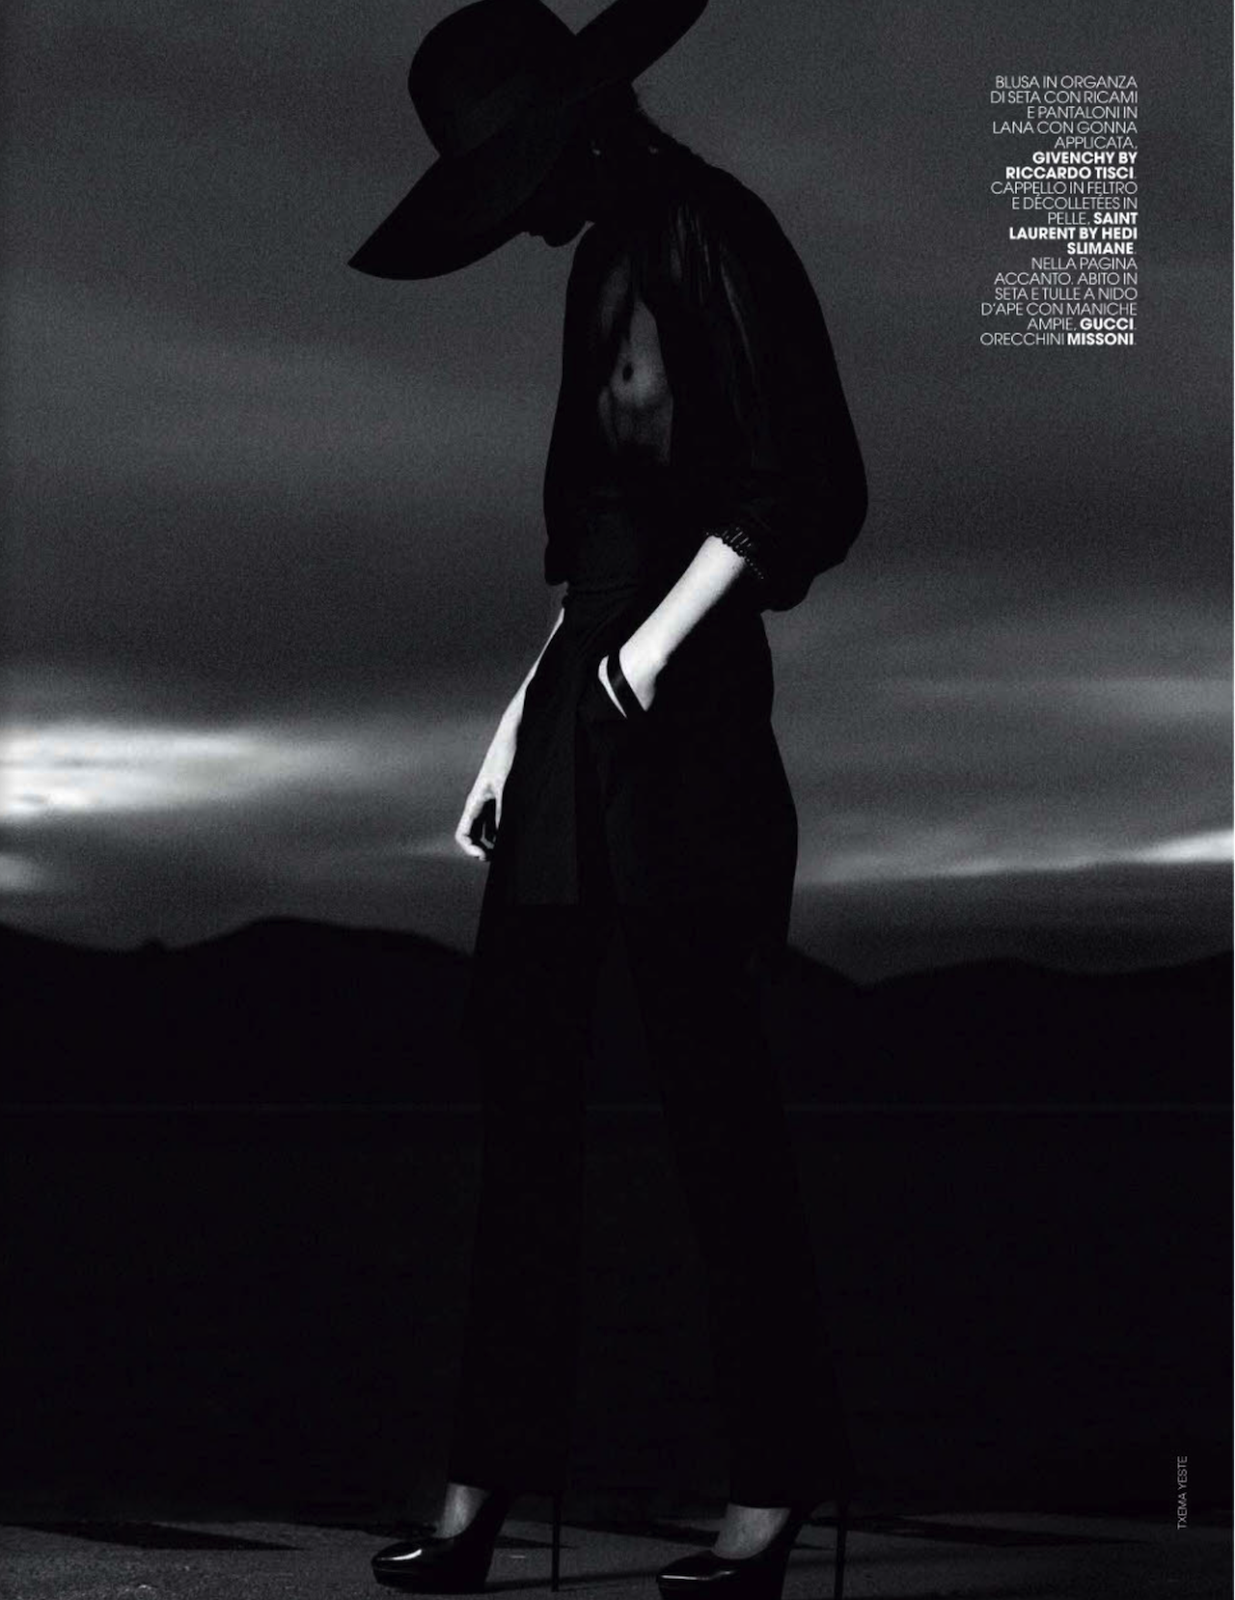 FASCINO & MISTERO: OPHELIE RUPP BY TXEMA YESTE FOR MARIE CLAIRE ITALIA MARCH 2013